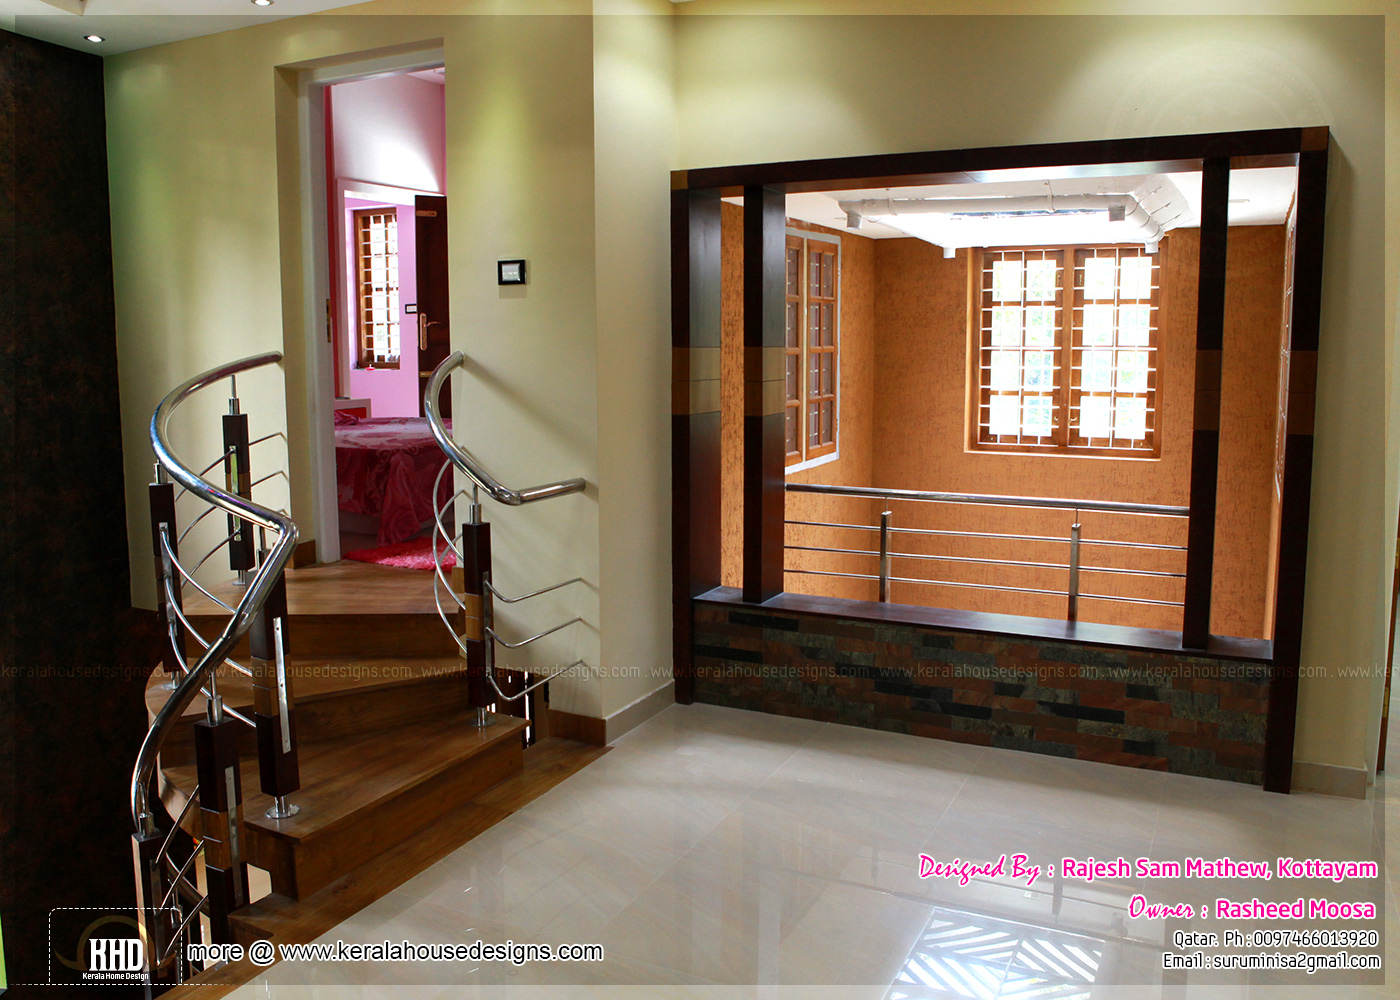 Design House Interiors Kerala Interior Design With Photos Kerala Home Design